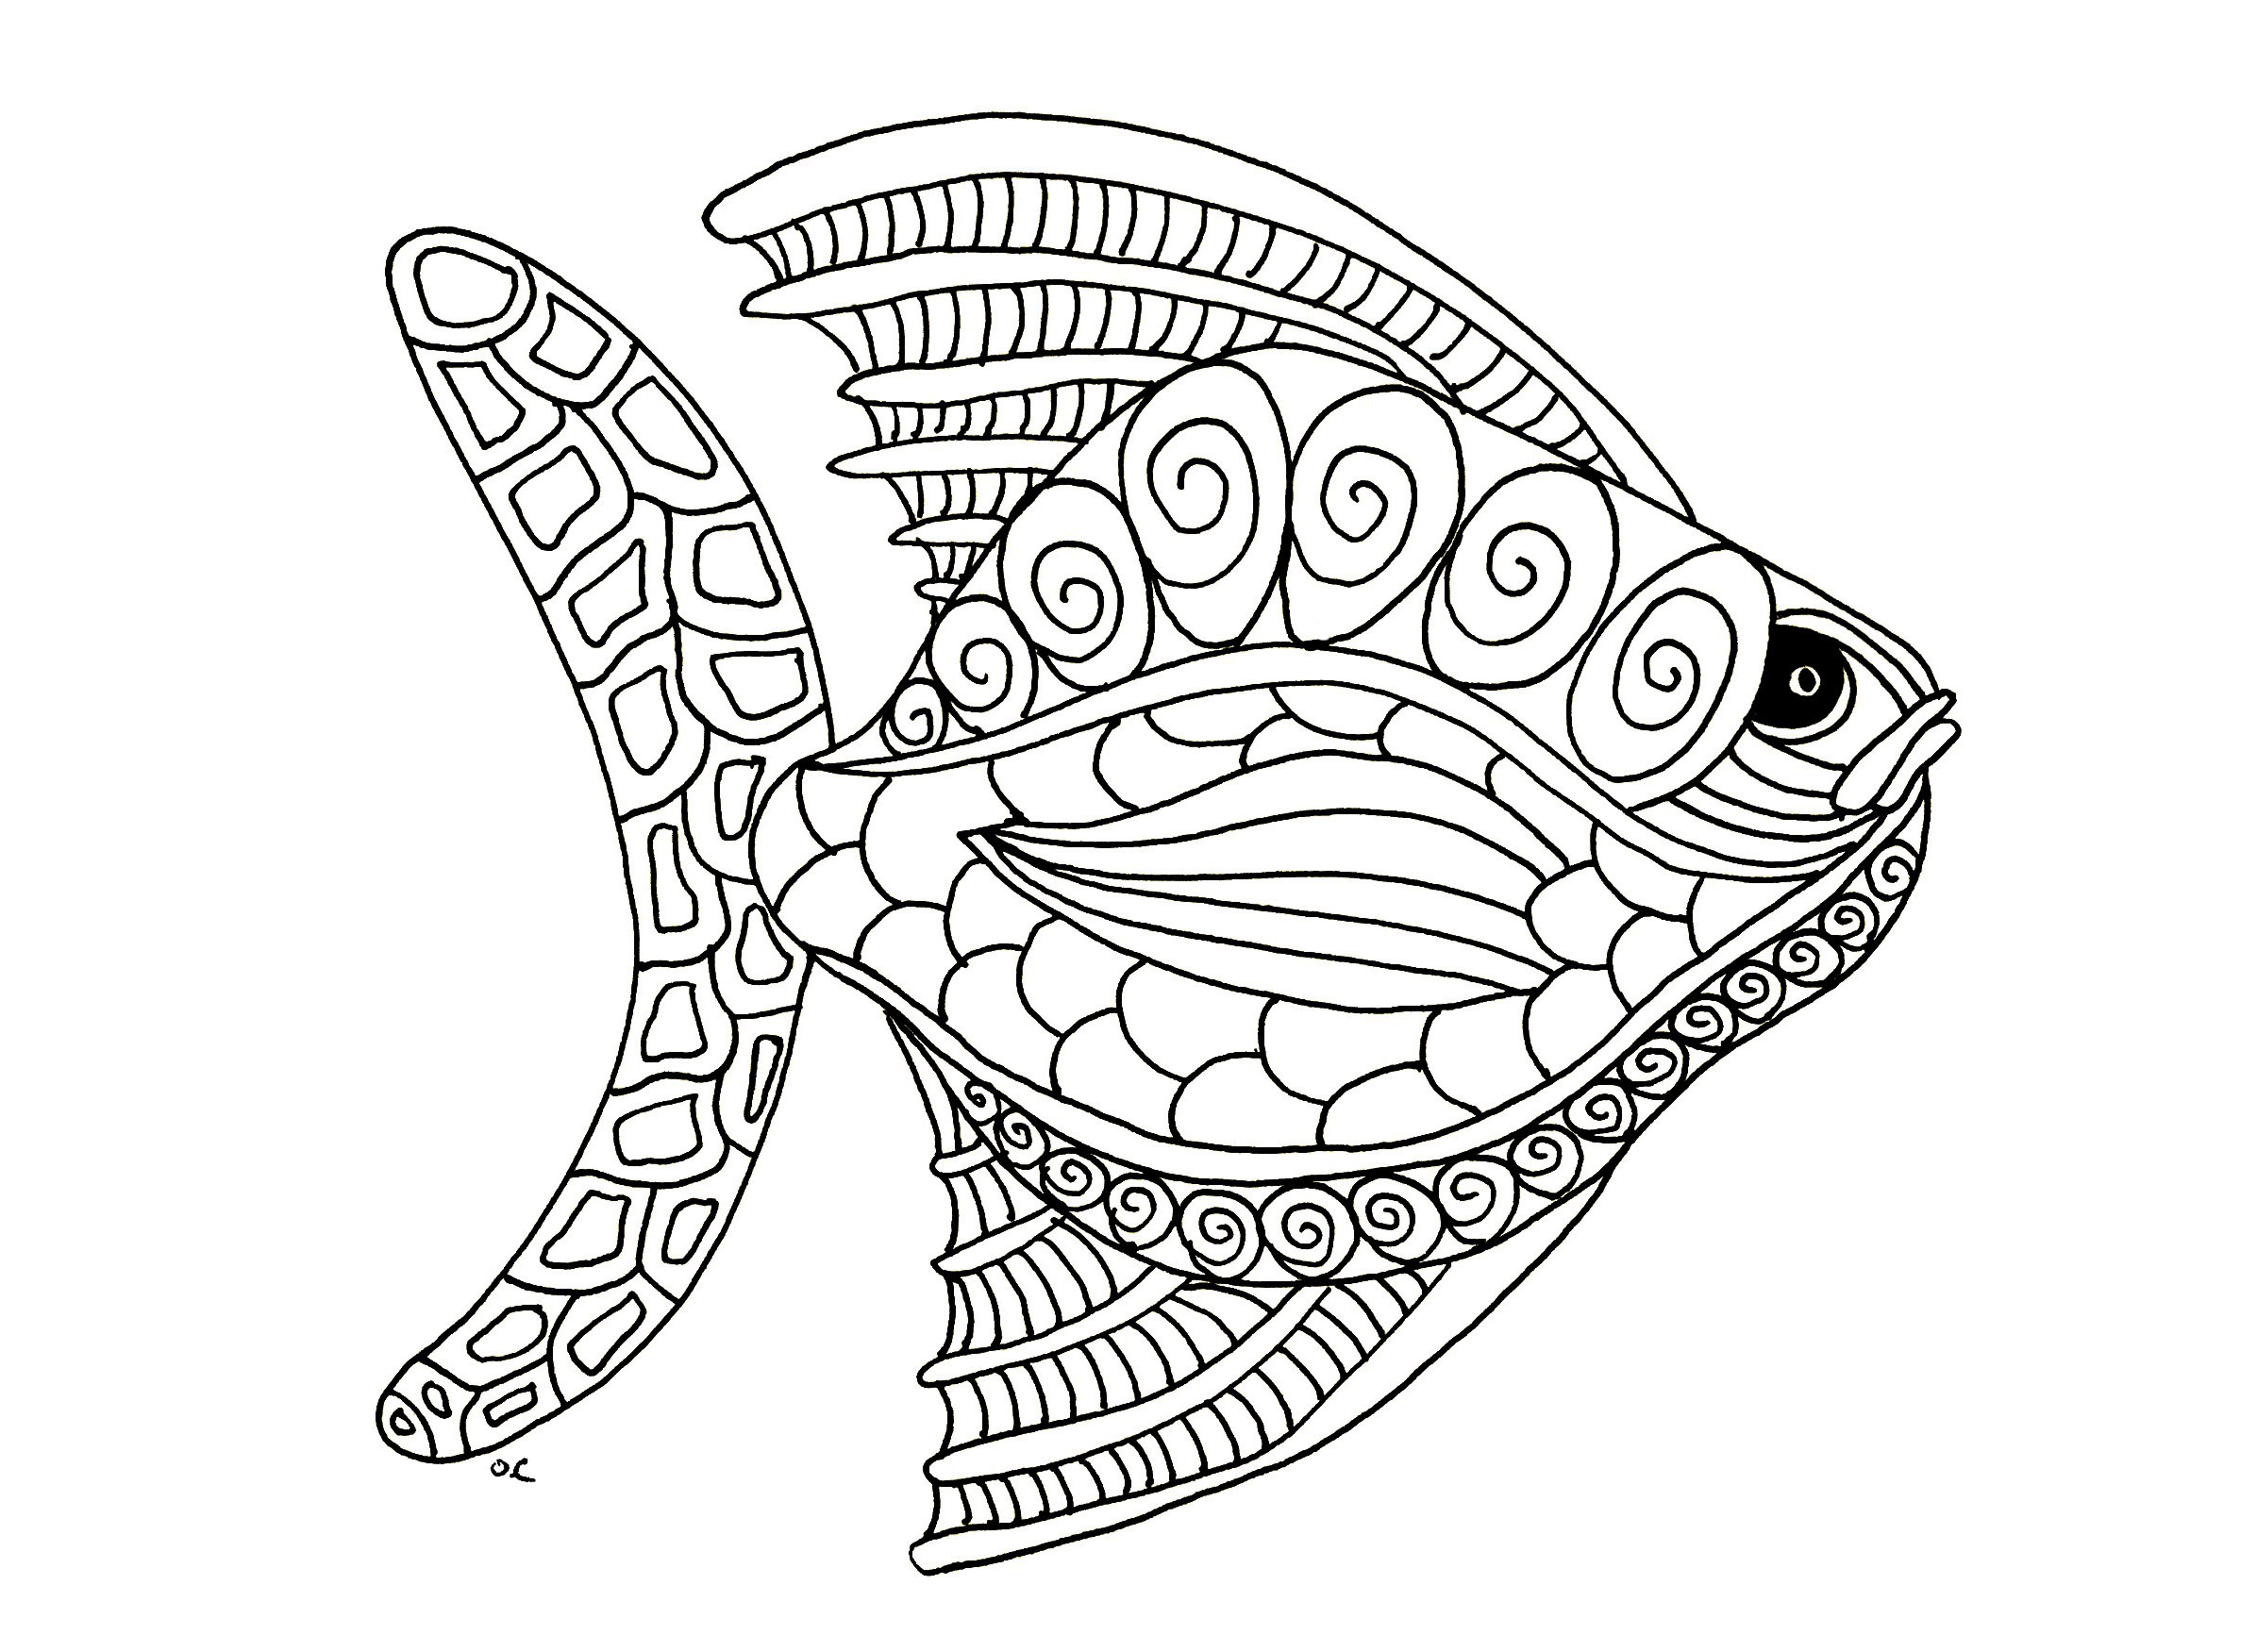 Animal coloring pages for adults best coloring pages for for Free printable coloring pages for adults and kids